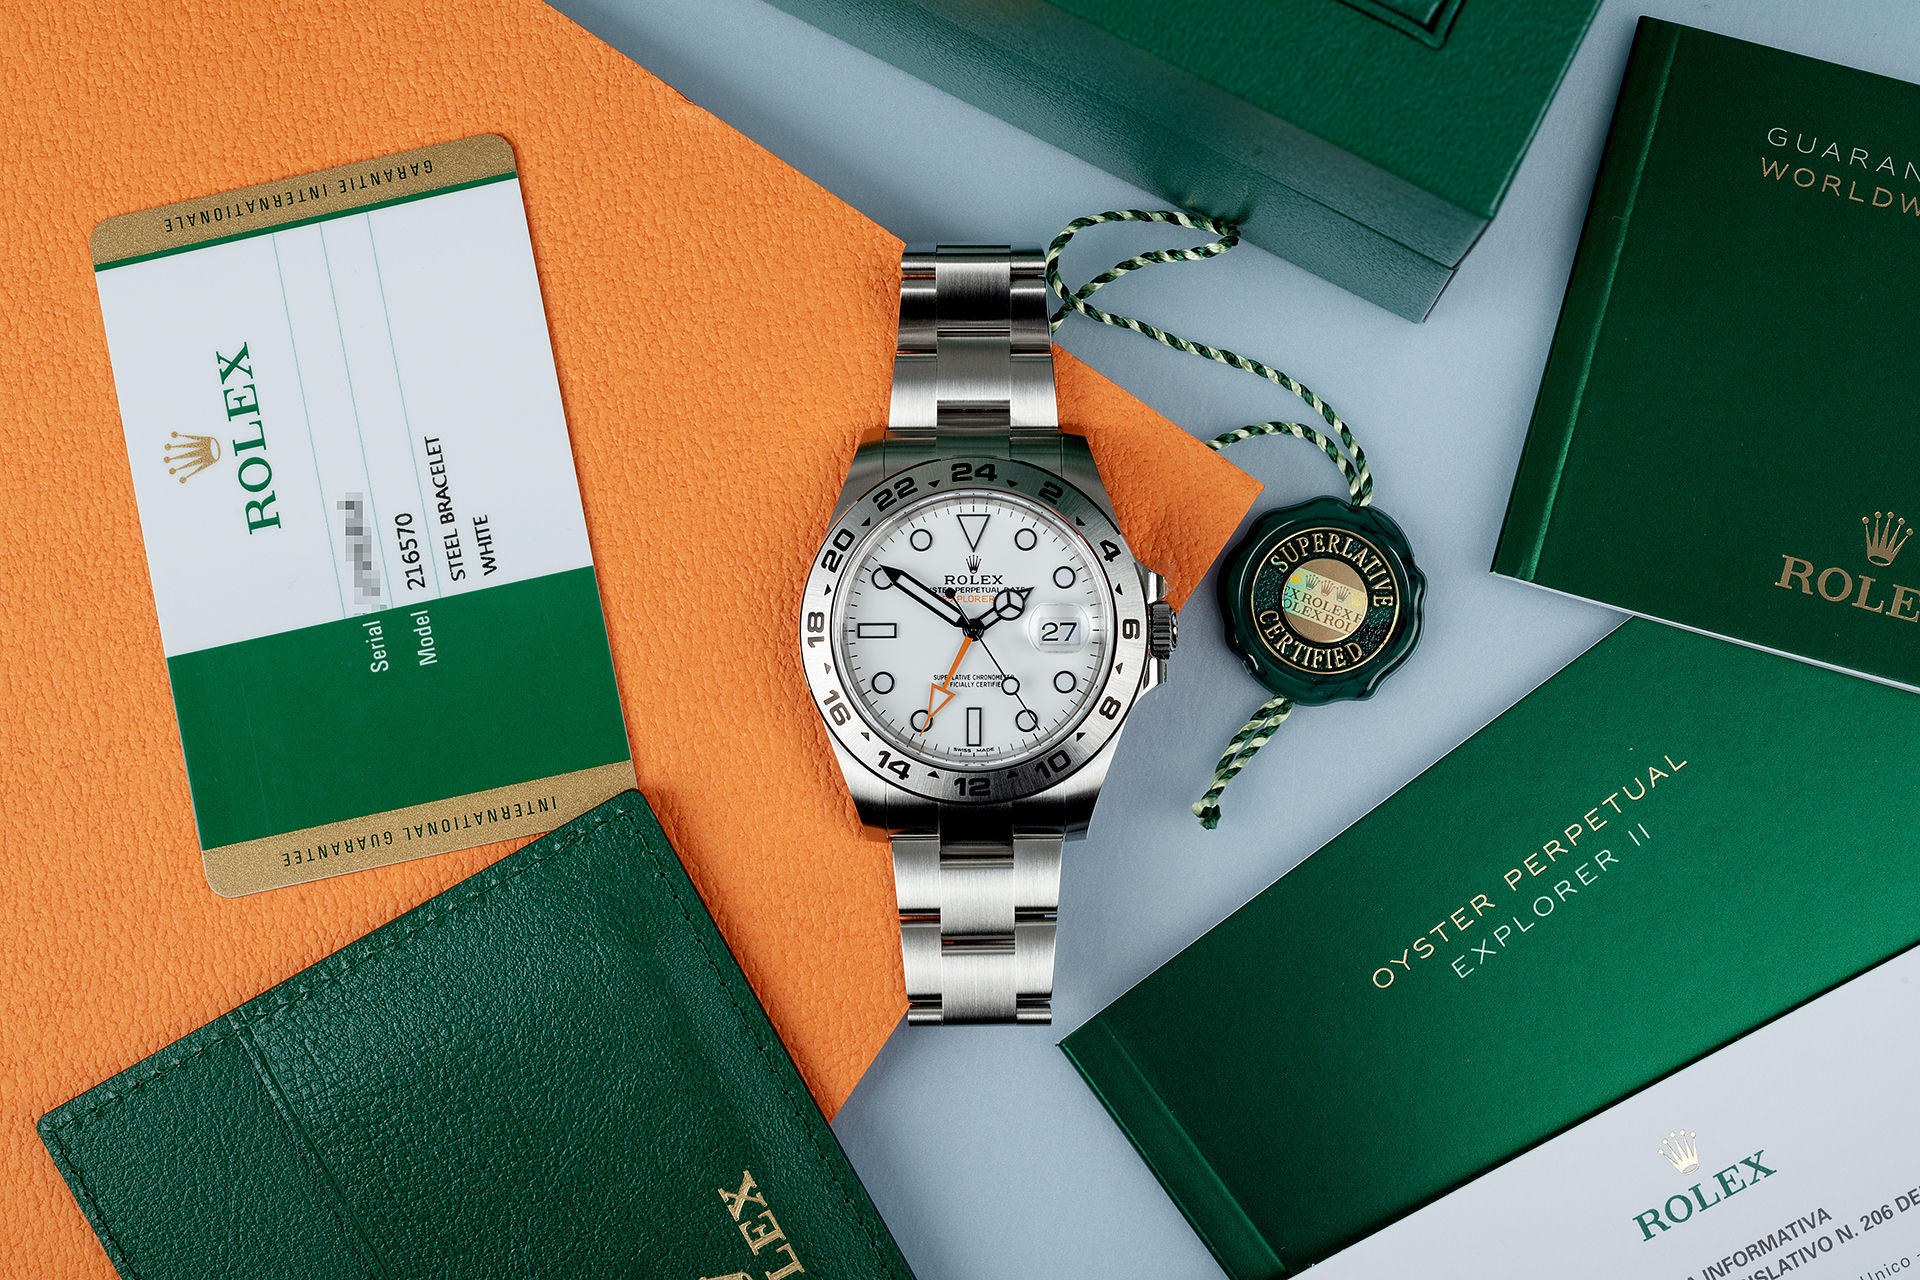 ref 216570 | Complete Set '5 Year Warranty' | Rolex Explorer II